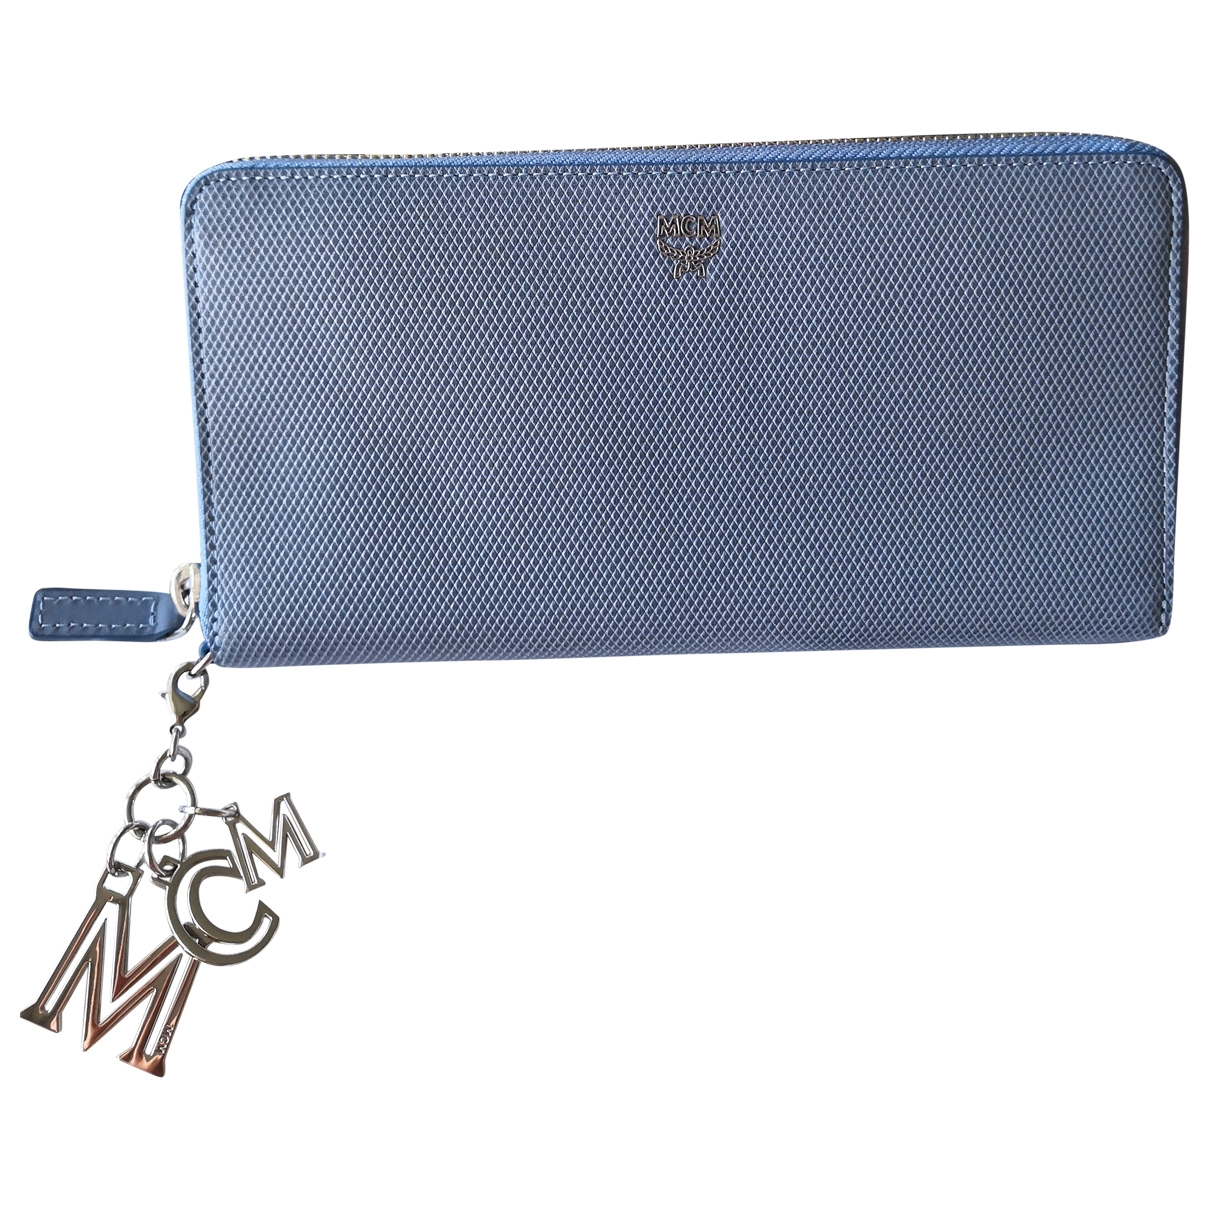 Mcm \N Blue Leather Purses, wallet & cases for Women \N